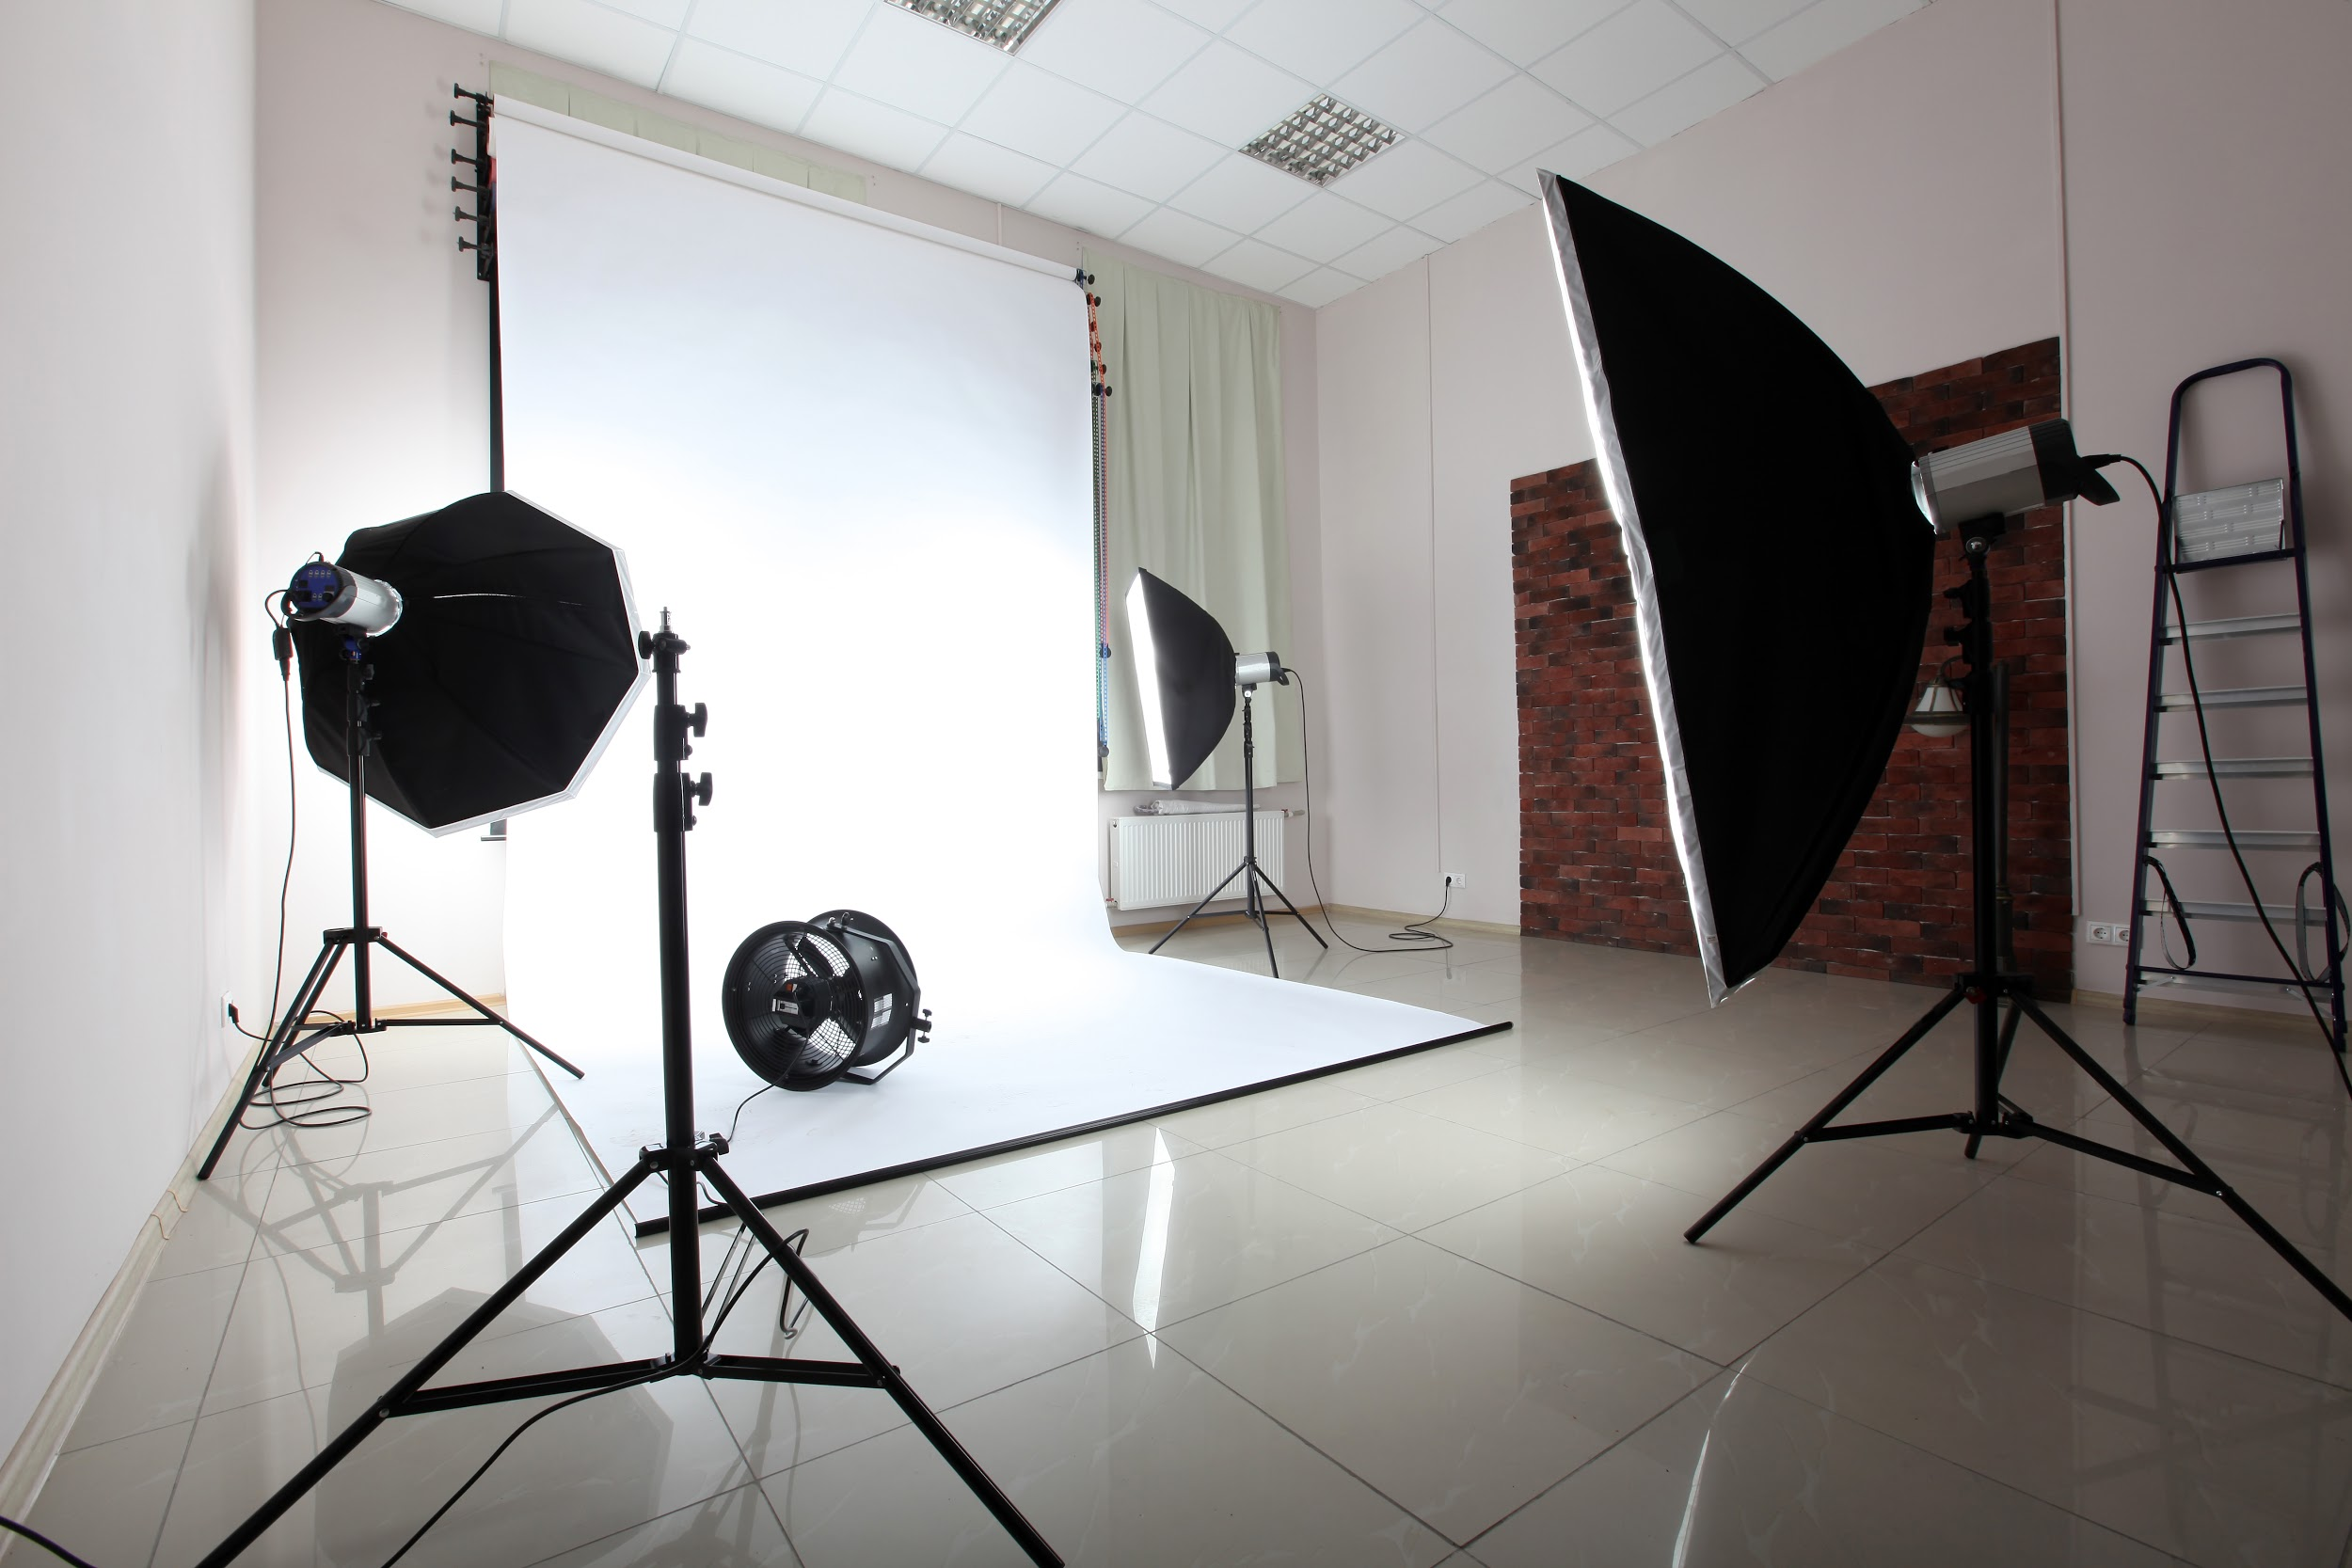 Studio One Photography and Video in Chicago, Illinois Good name for photography studio